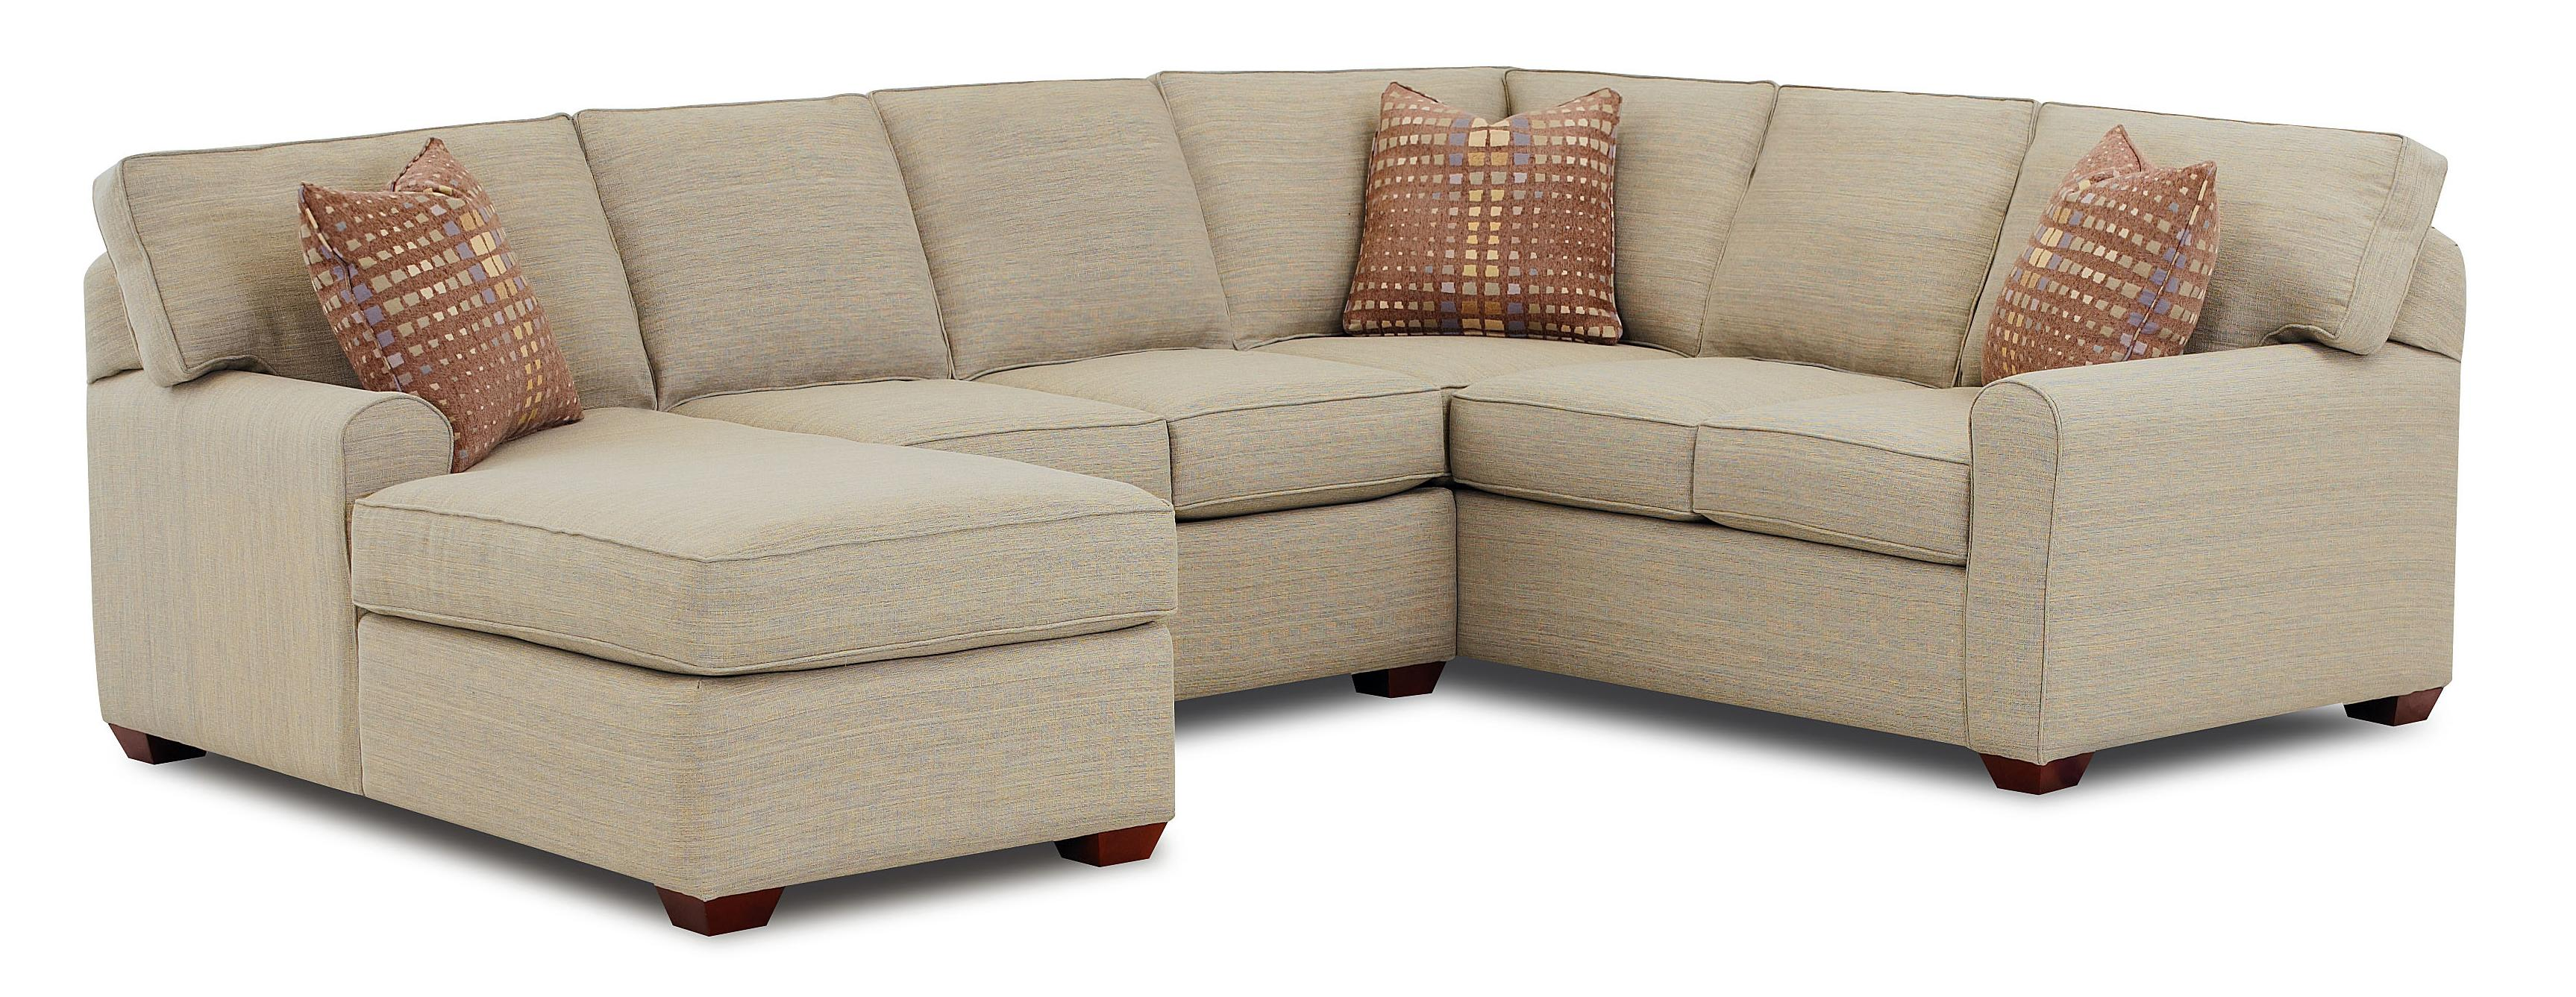 Lounge Sofa Depth Sectional Sofa With Left Facing Chaise Lounge By Klaussner